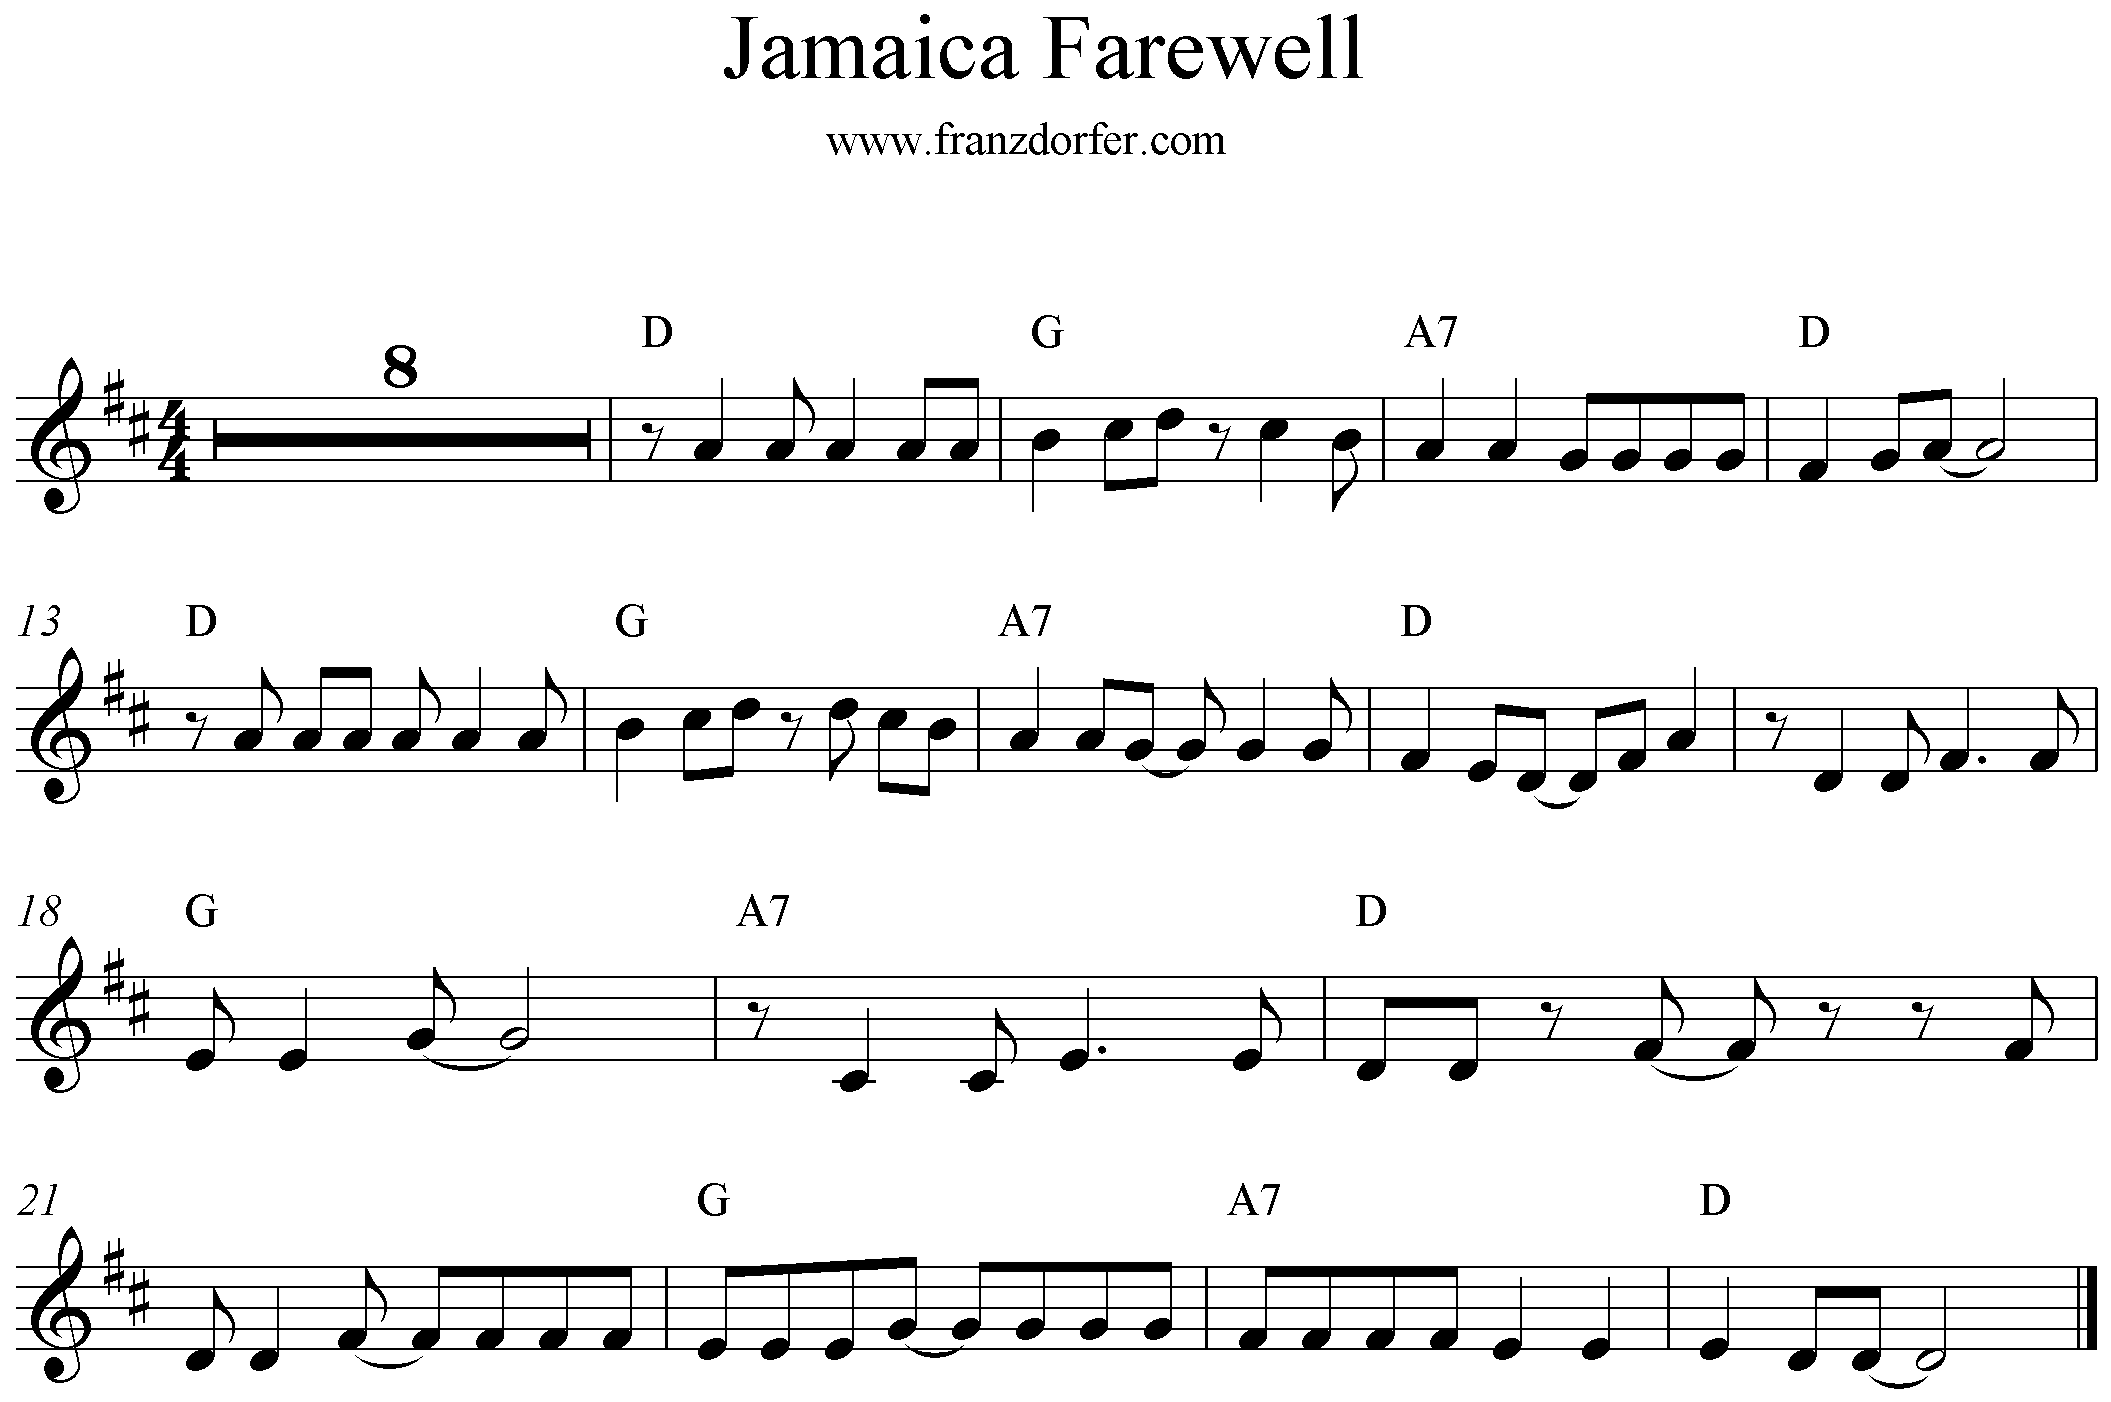 Noten Jamaica farewell